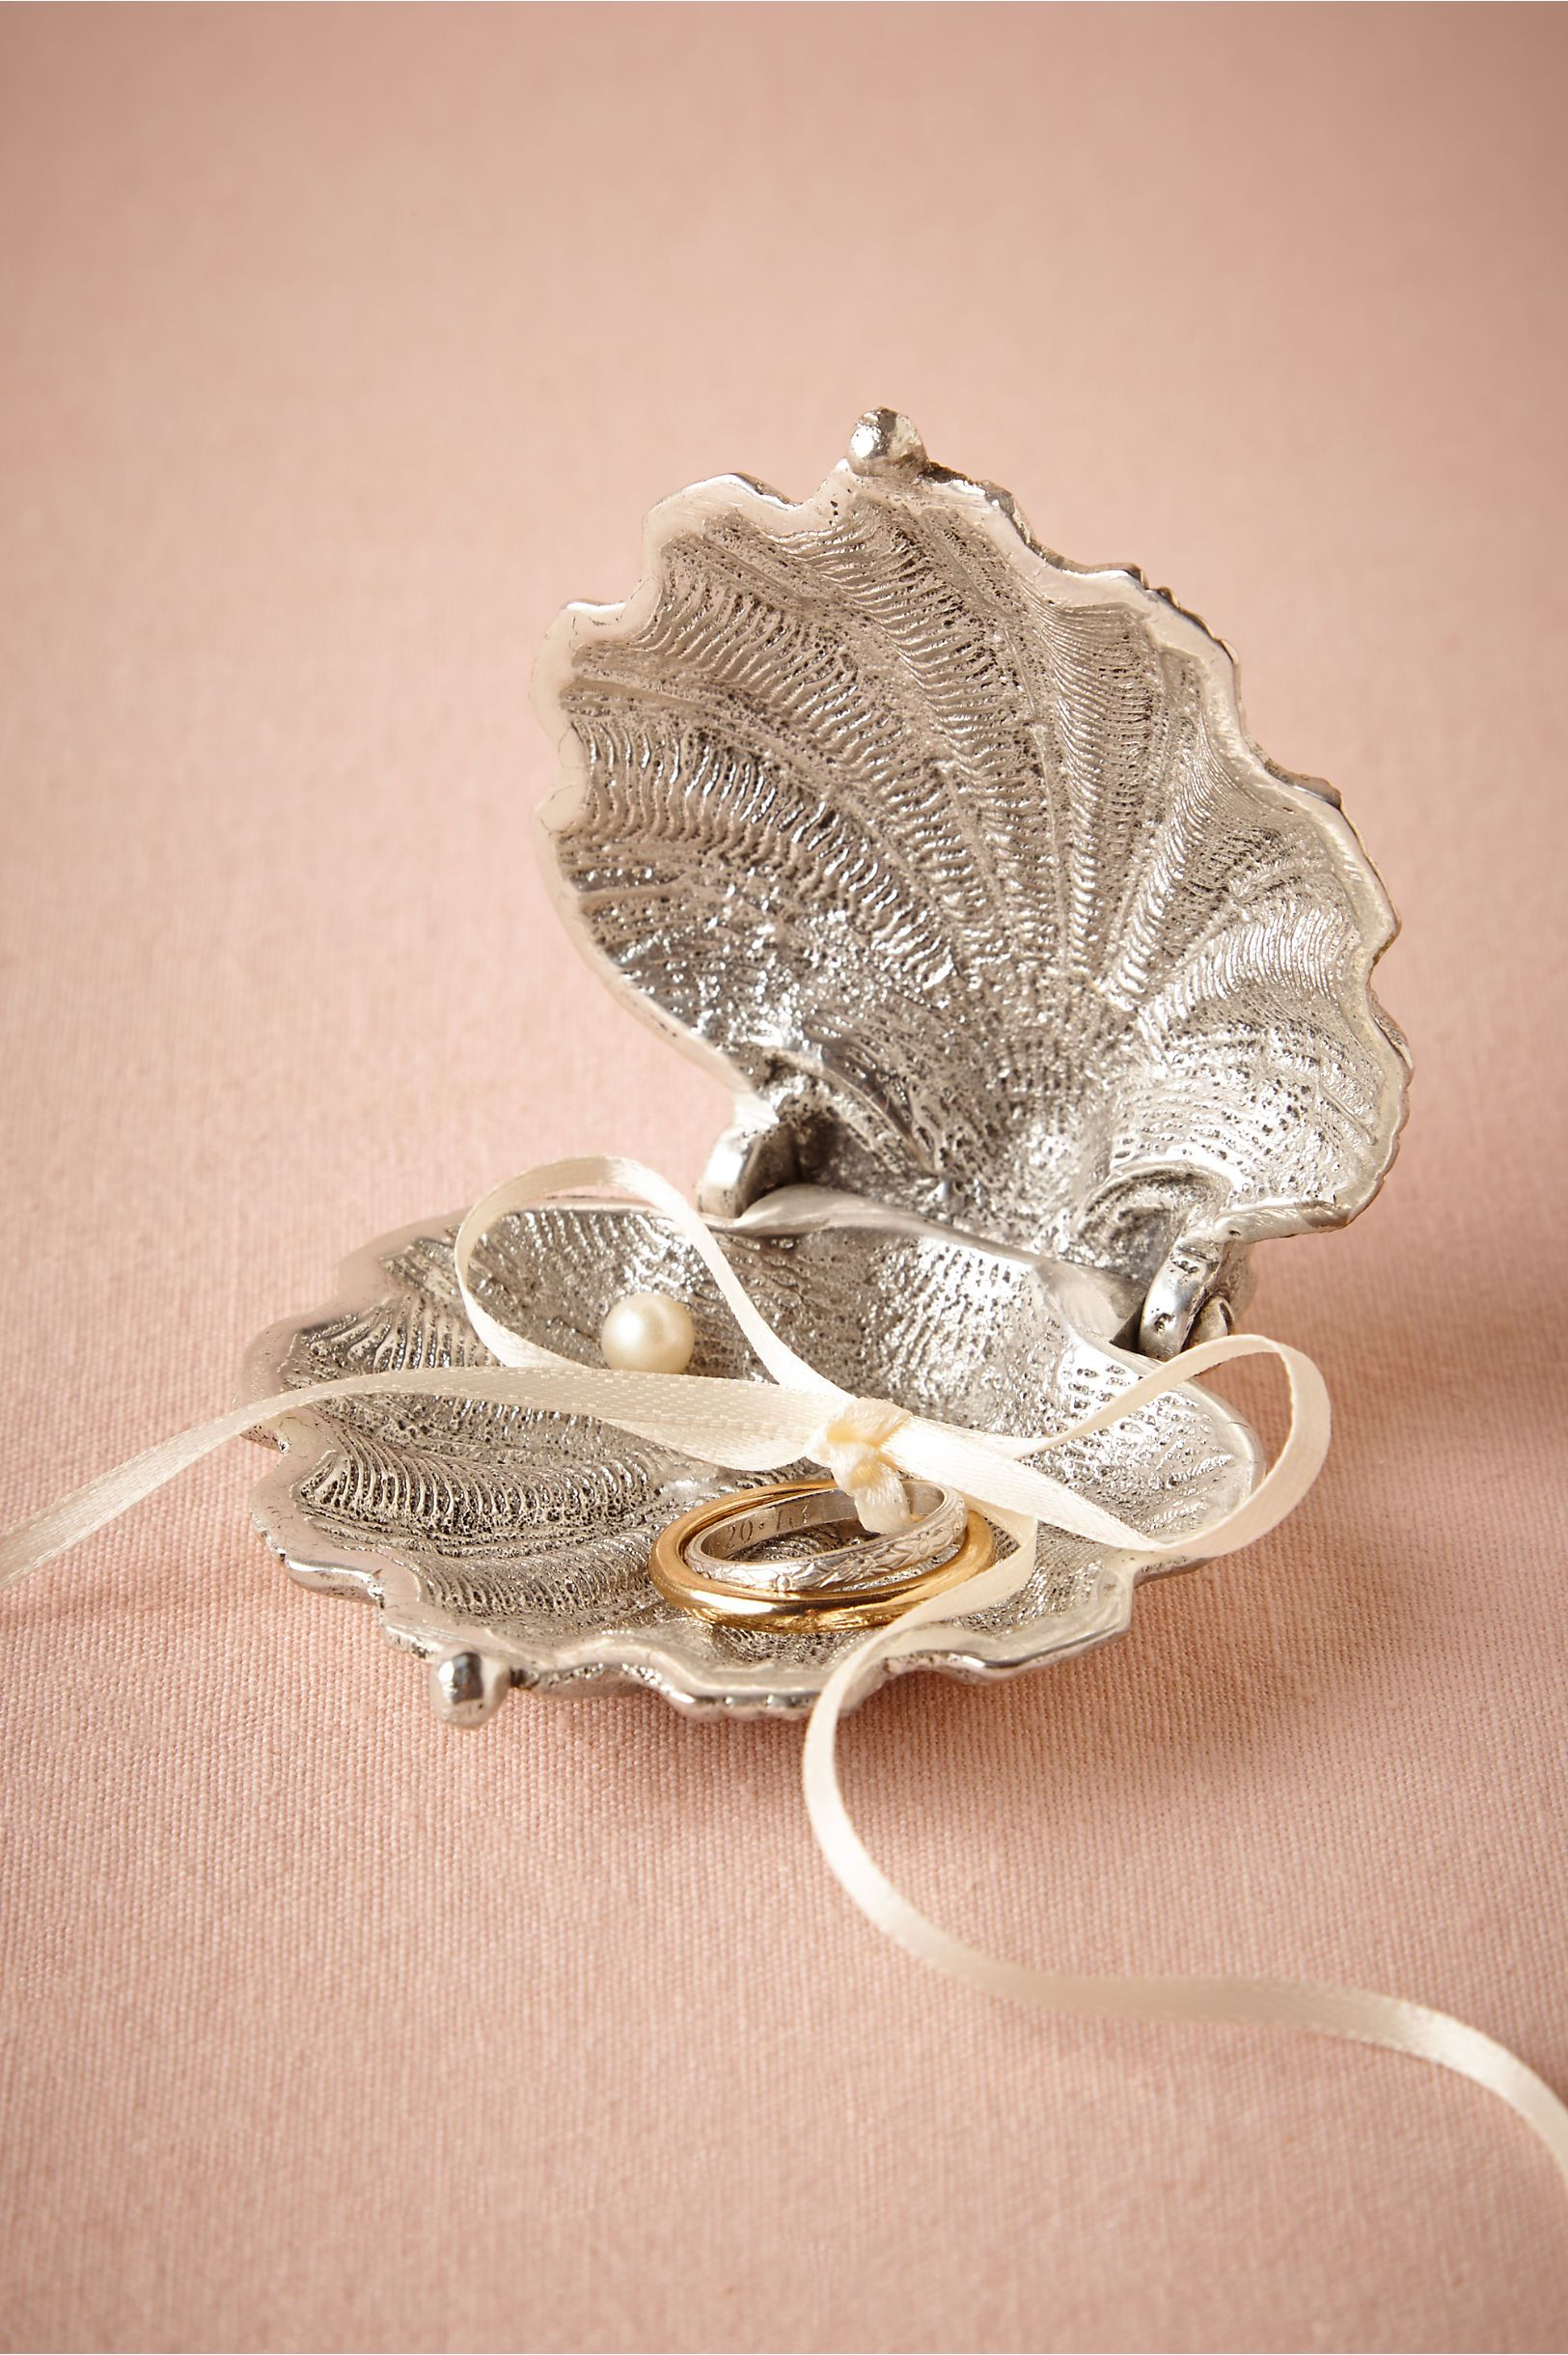 Silvery Seashell Ring Holder In D�cor Ceremony At Bhldn I Always Say My Heart Is The Pearl Formed Under Great Pain And Irritation But A Precious Gem: Beach Wedding Little Ring At Websimilar.org